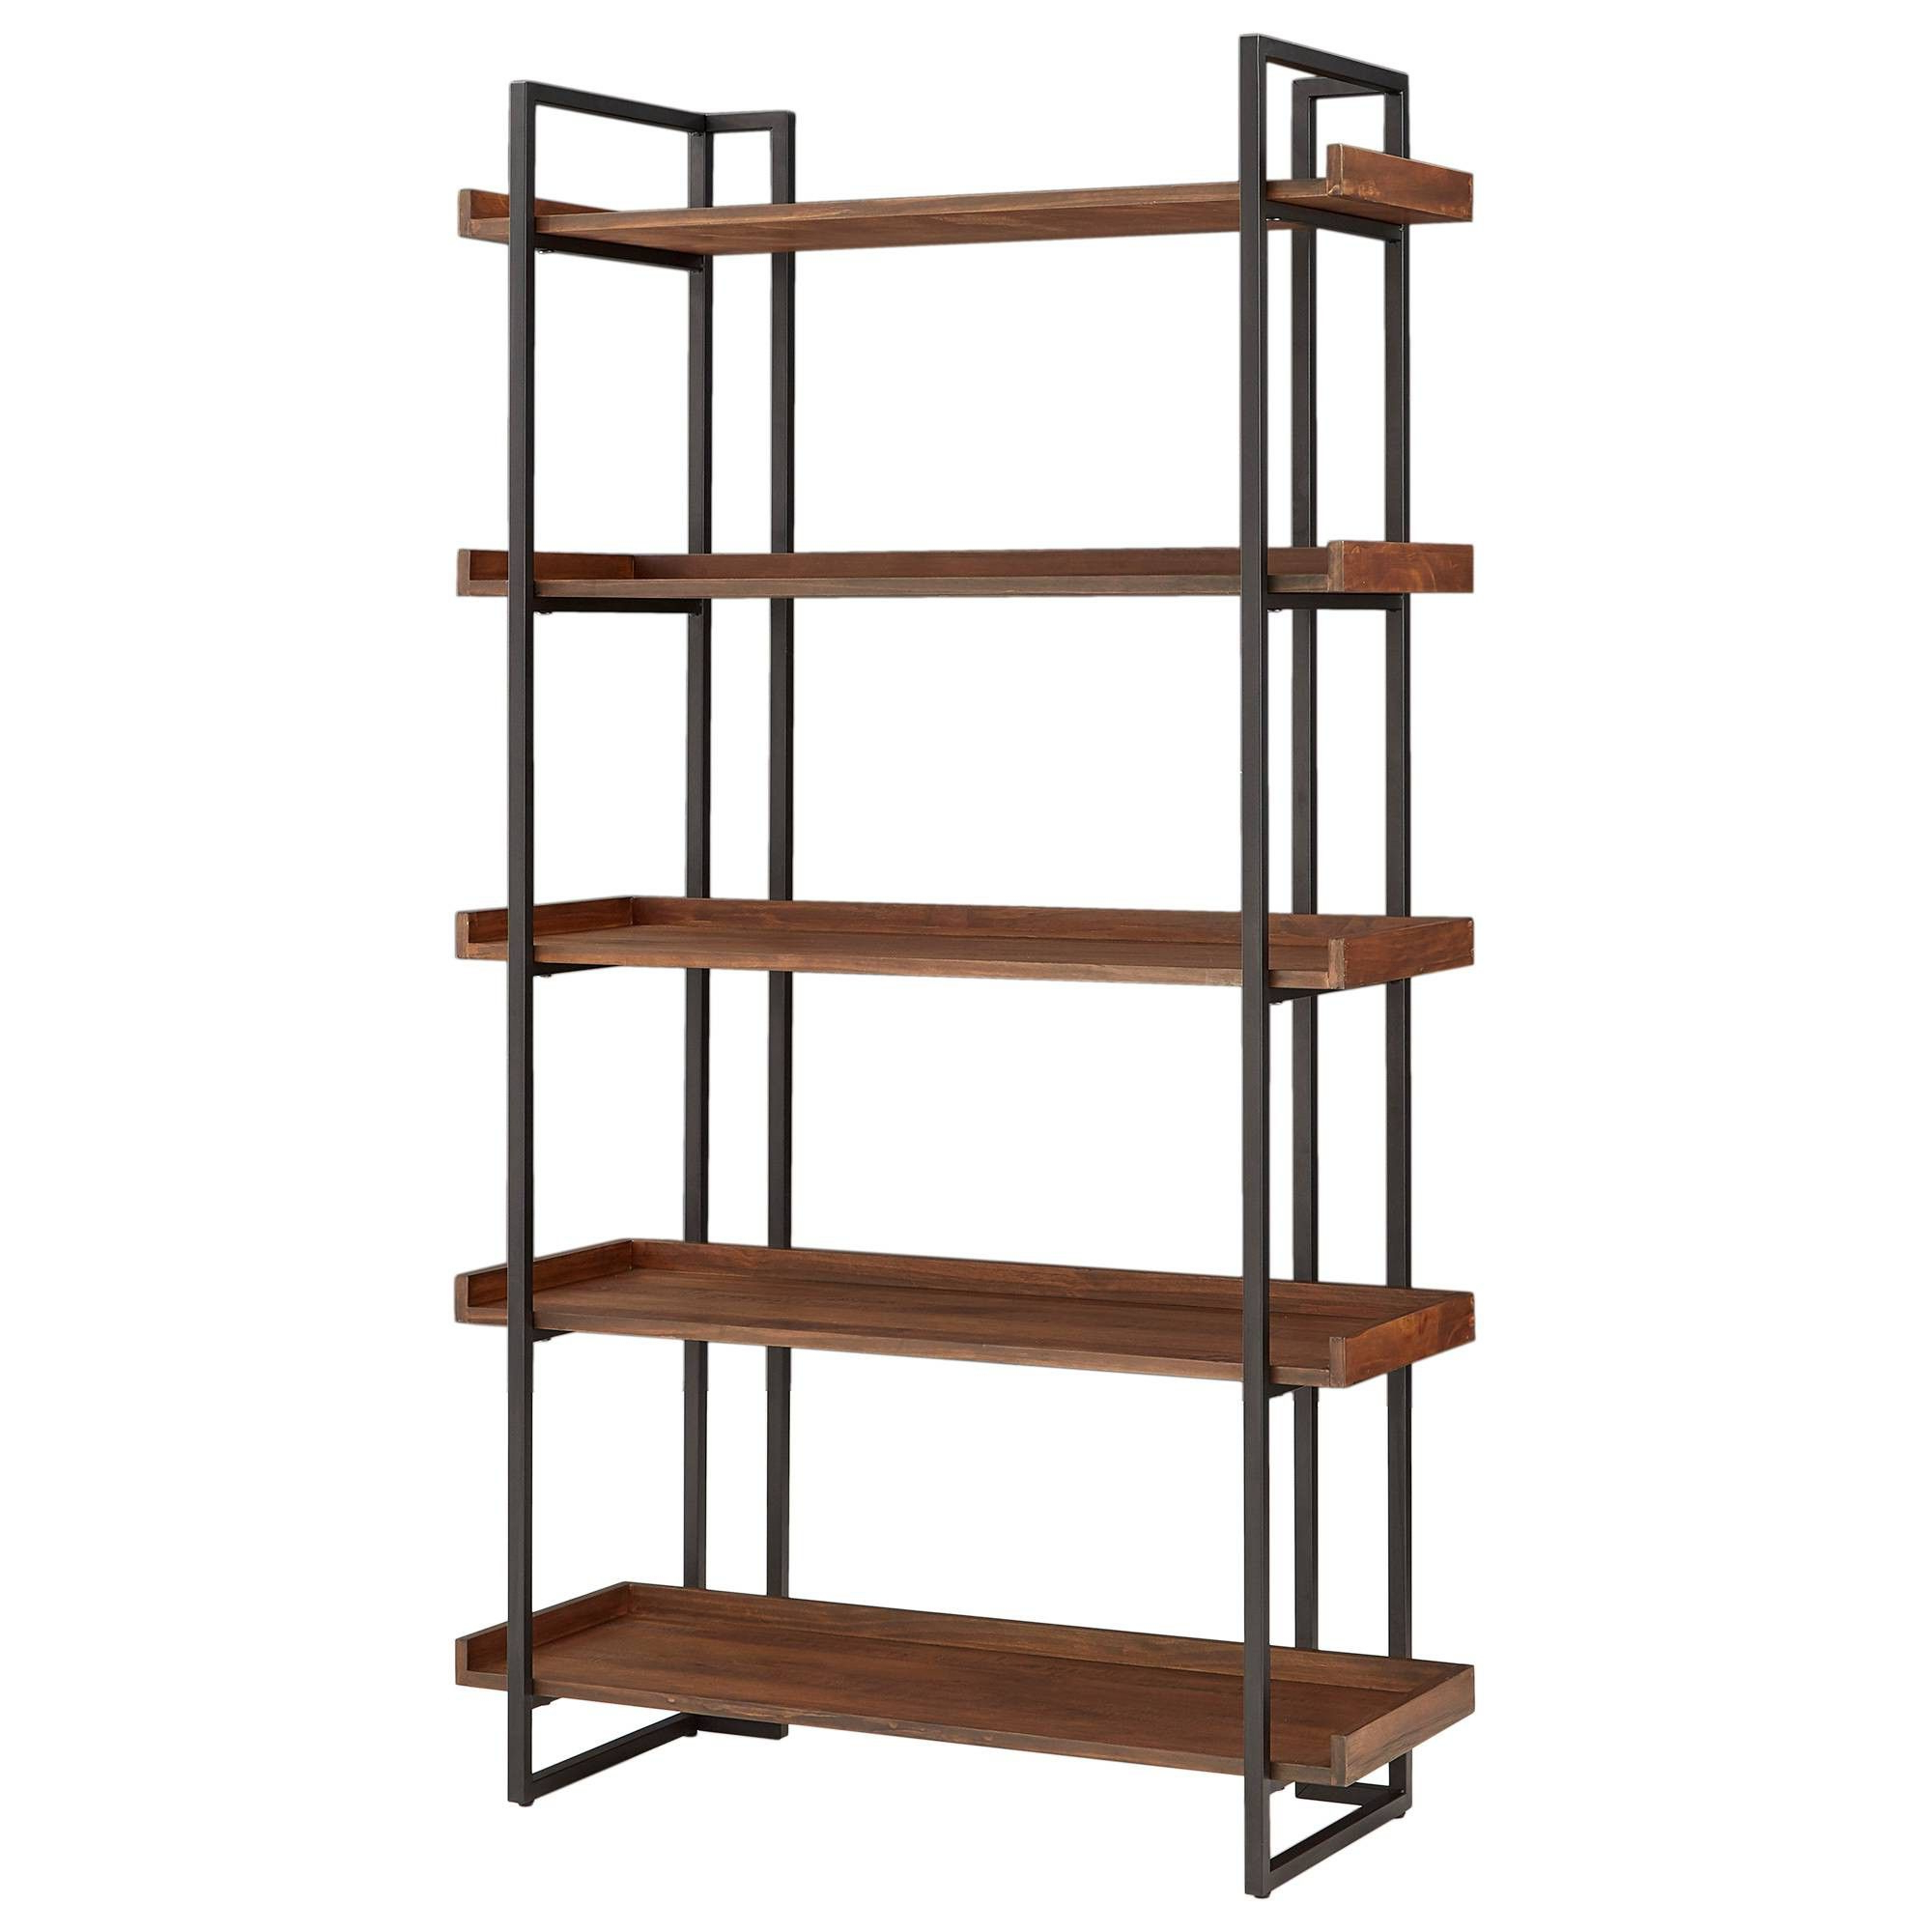 "72"" Felicia Rustic Industrial Metal/wood Etagere Bookshelf Throughout Well Liked Swindell Etagere Bookcases (View 6 of 20)"